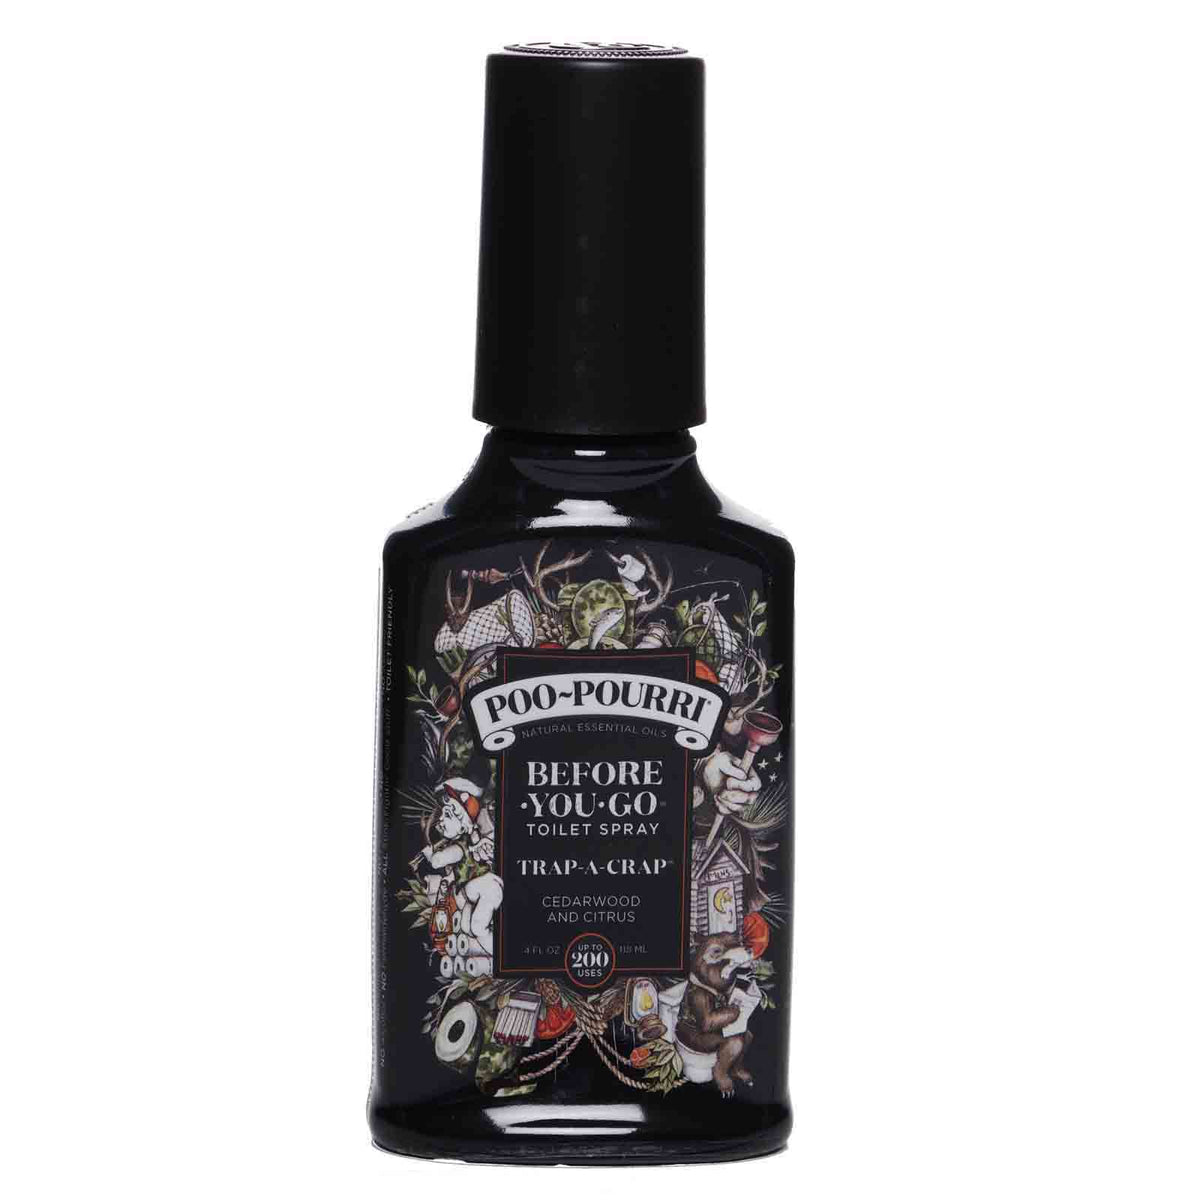 POO-POURRI | Before-You-Go Toilet Spray Trap-A-Crap-4oz (24/cs)